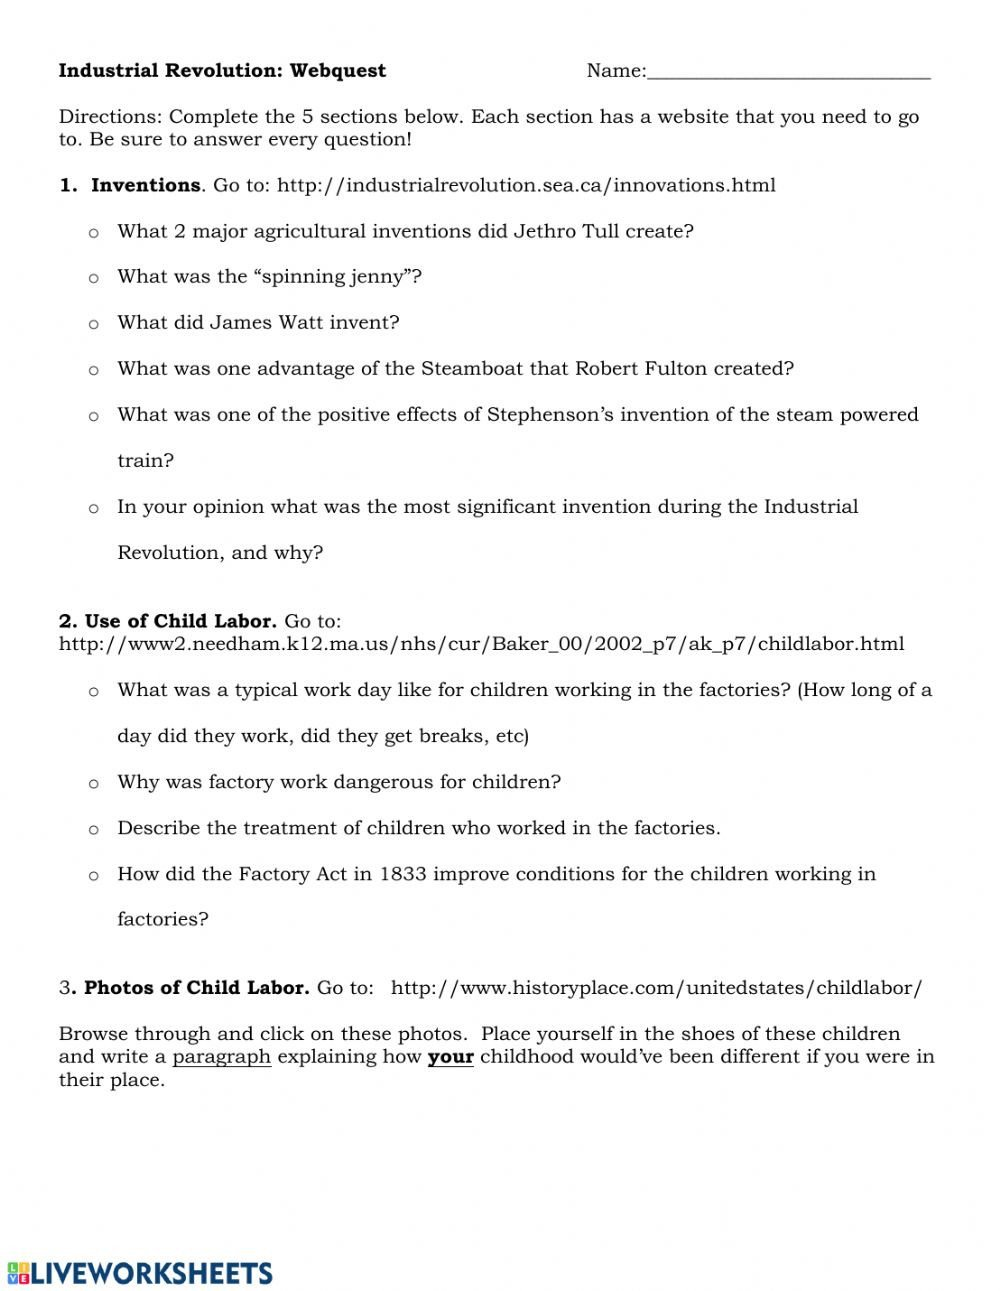 Industrial Revolution Worksheet Pdf Industrial Revolution Webquest Interactive Worksheet